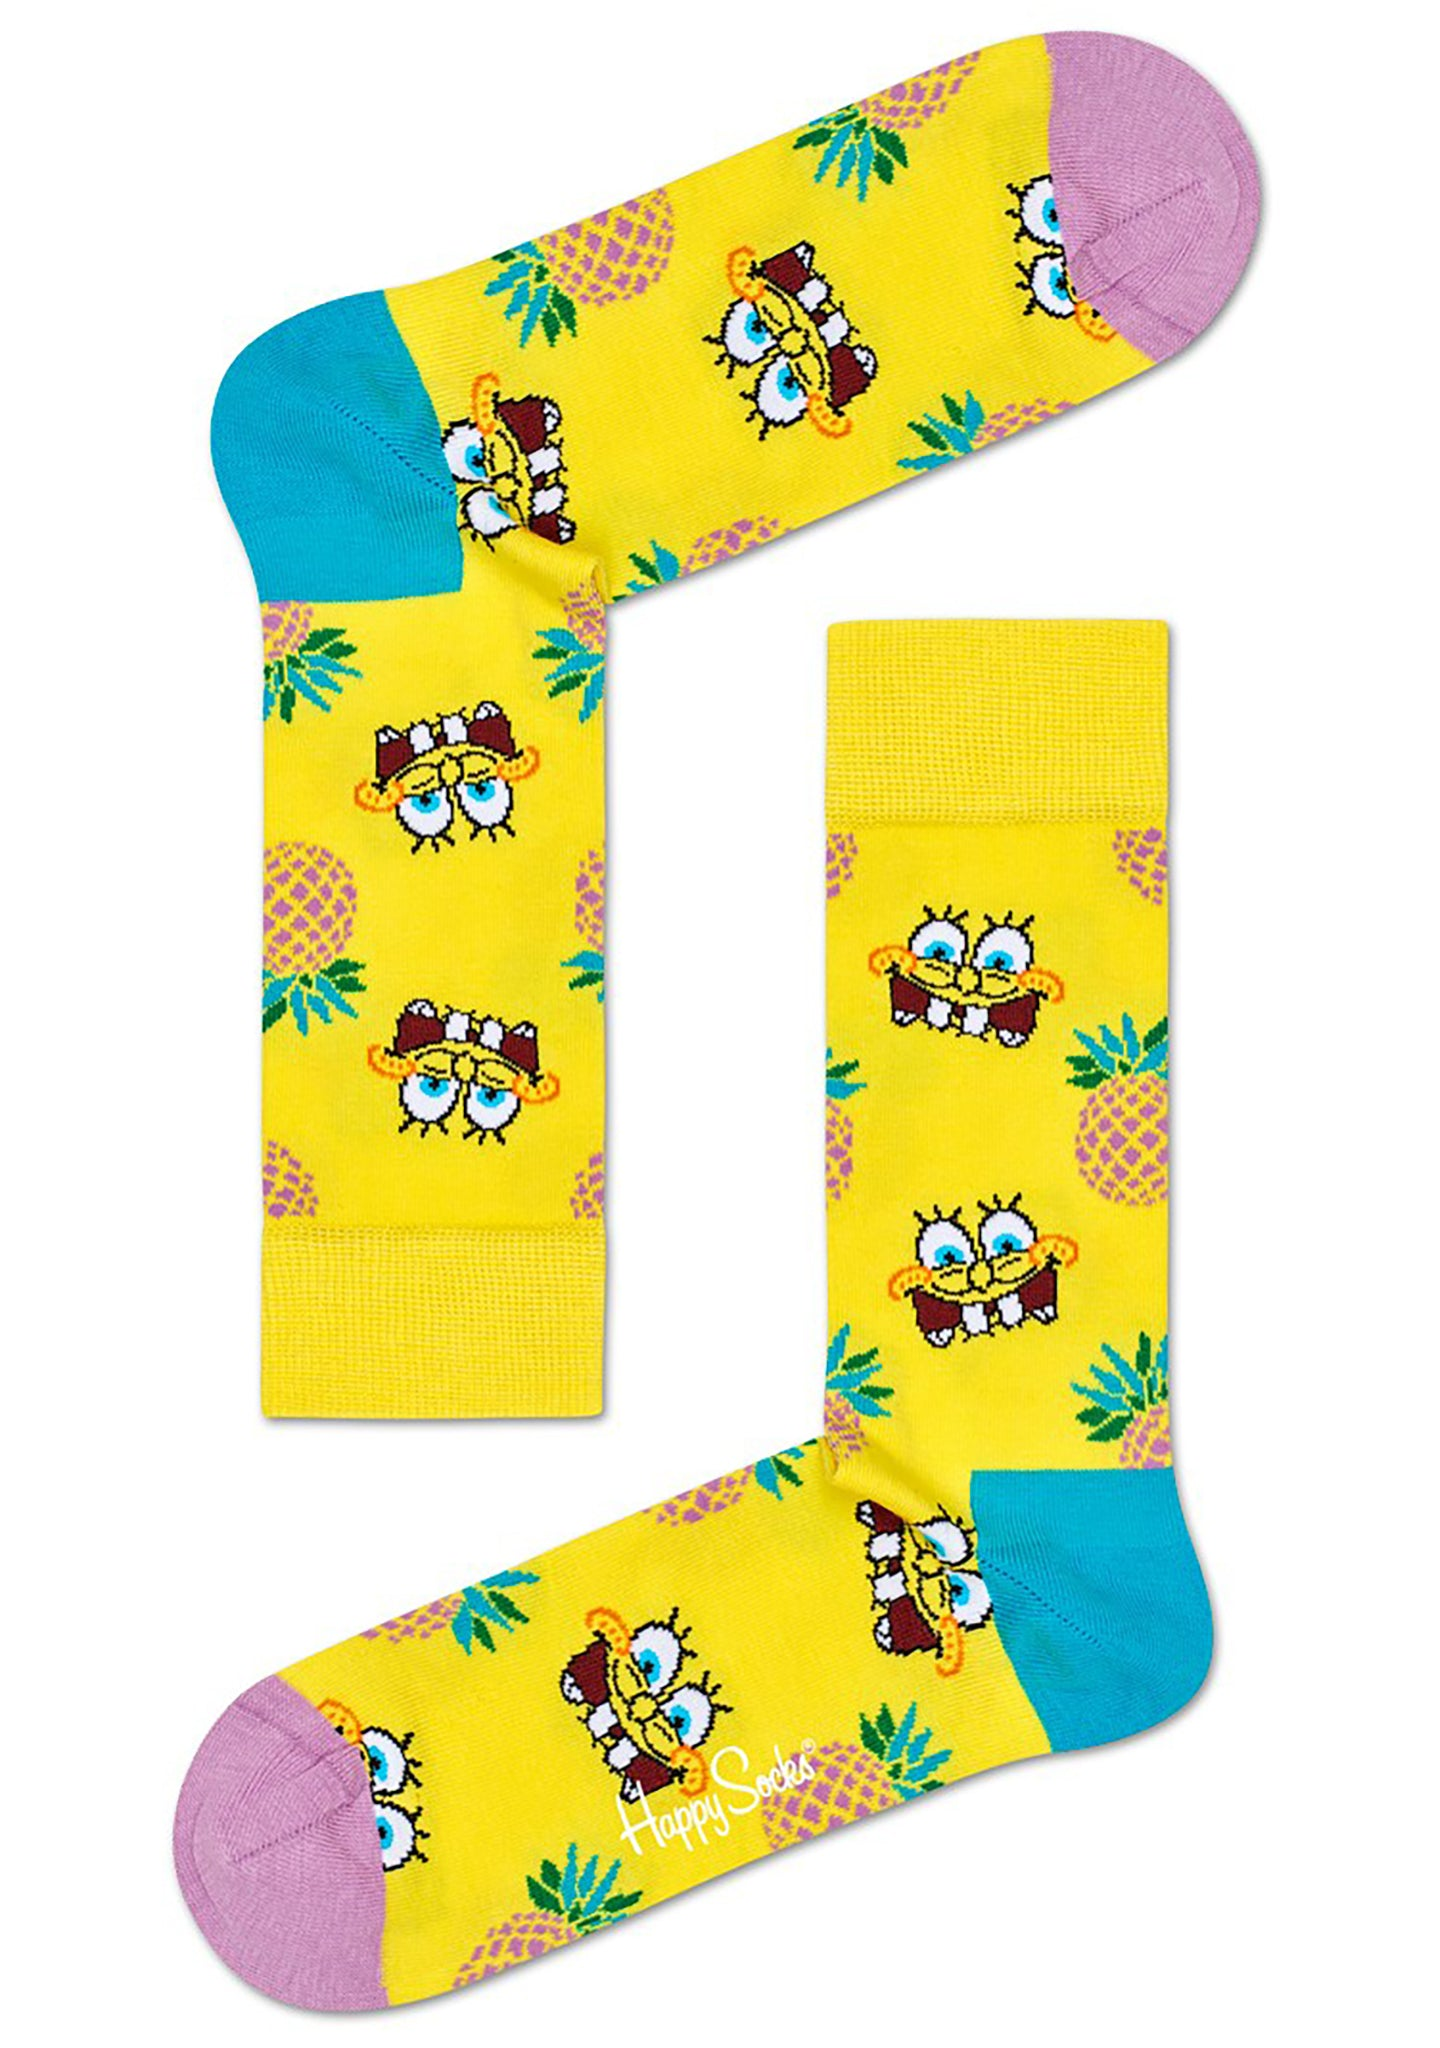 X Spongebob Squarepants 6PK Socks Gift Set